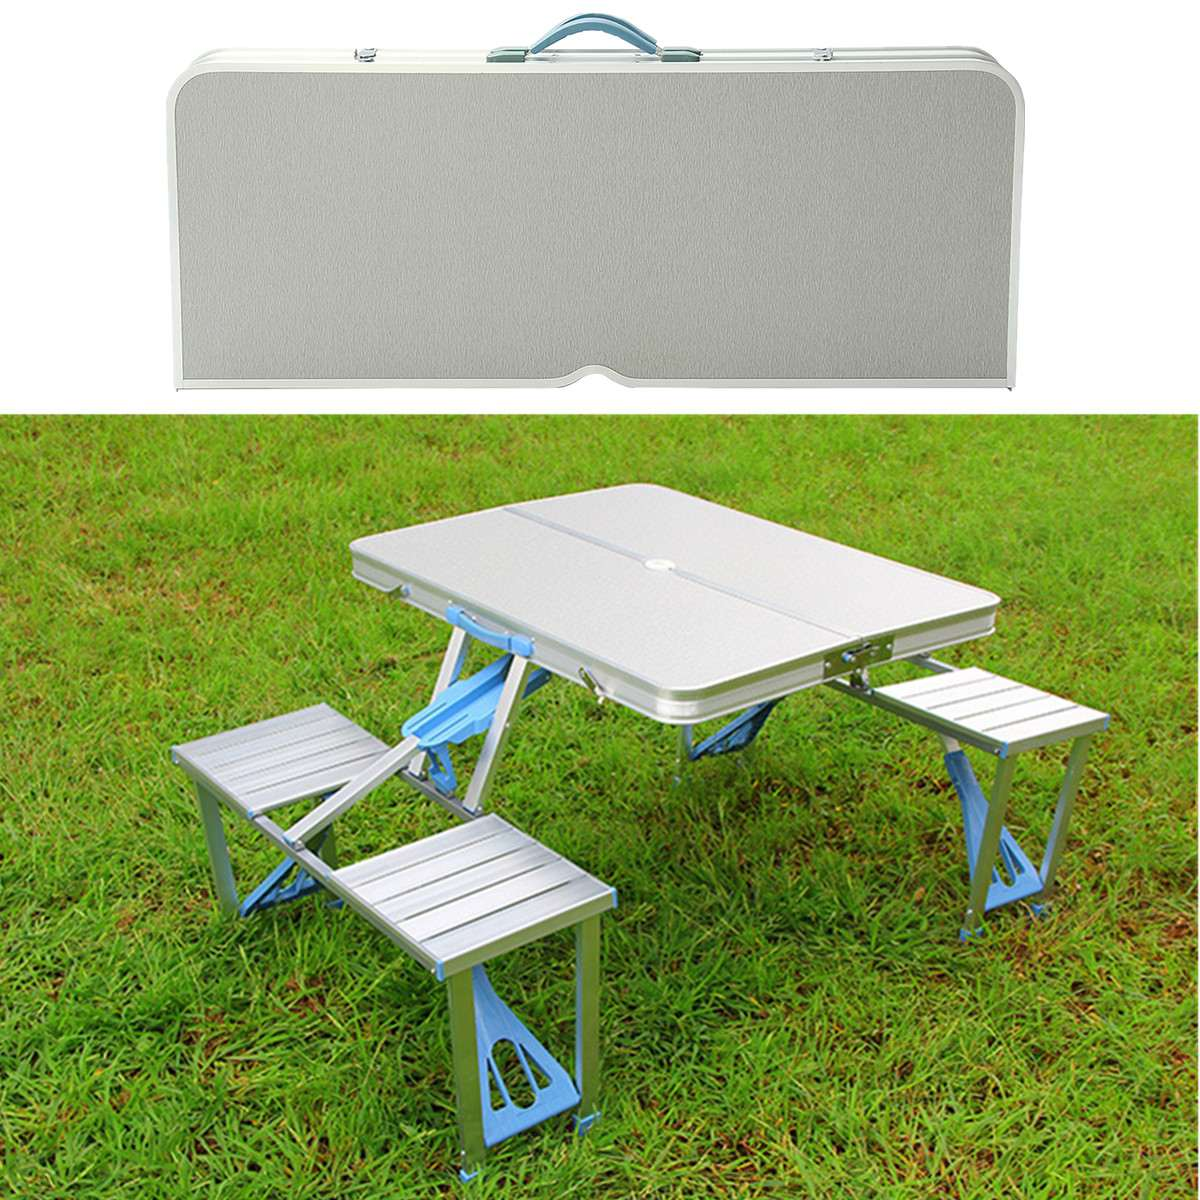 Outdoor Family Party 4 Person Aluminum Alloy Outdoor Portable Camping Picnic BBQ Folding Table Chair Stool Set hewolf portable size outdoor camping beach bbq barbecue grill rack household use lightweight folding picnic rack stand well sell